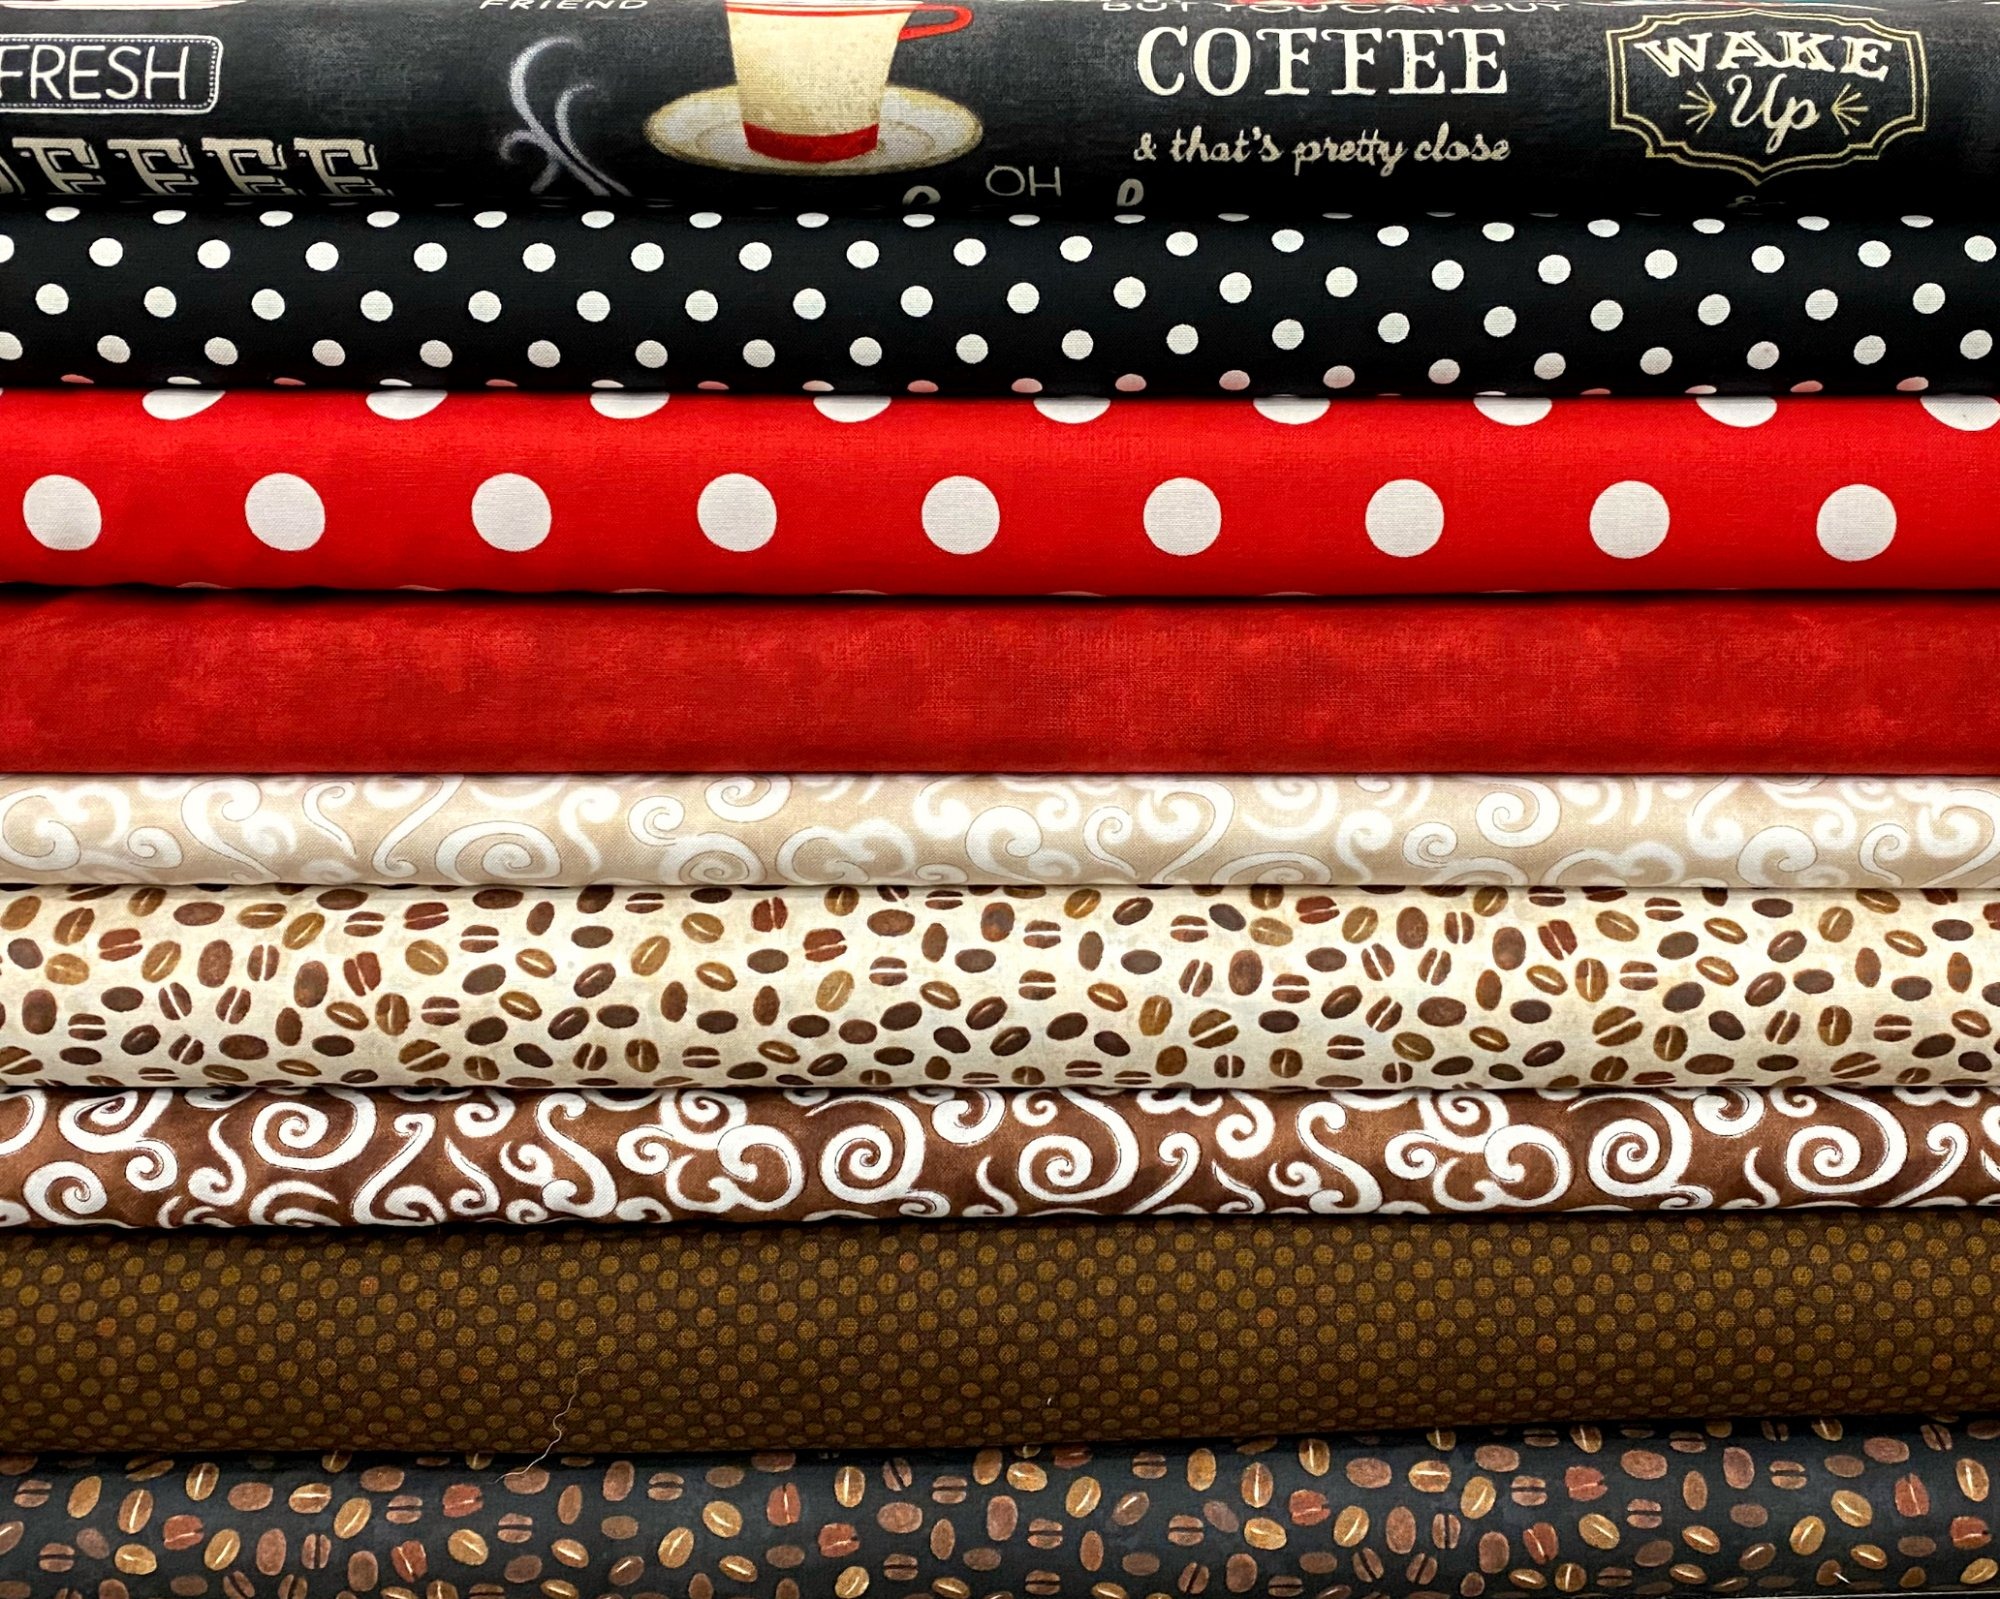 Coffee Time - 9 Fat Quarters